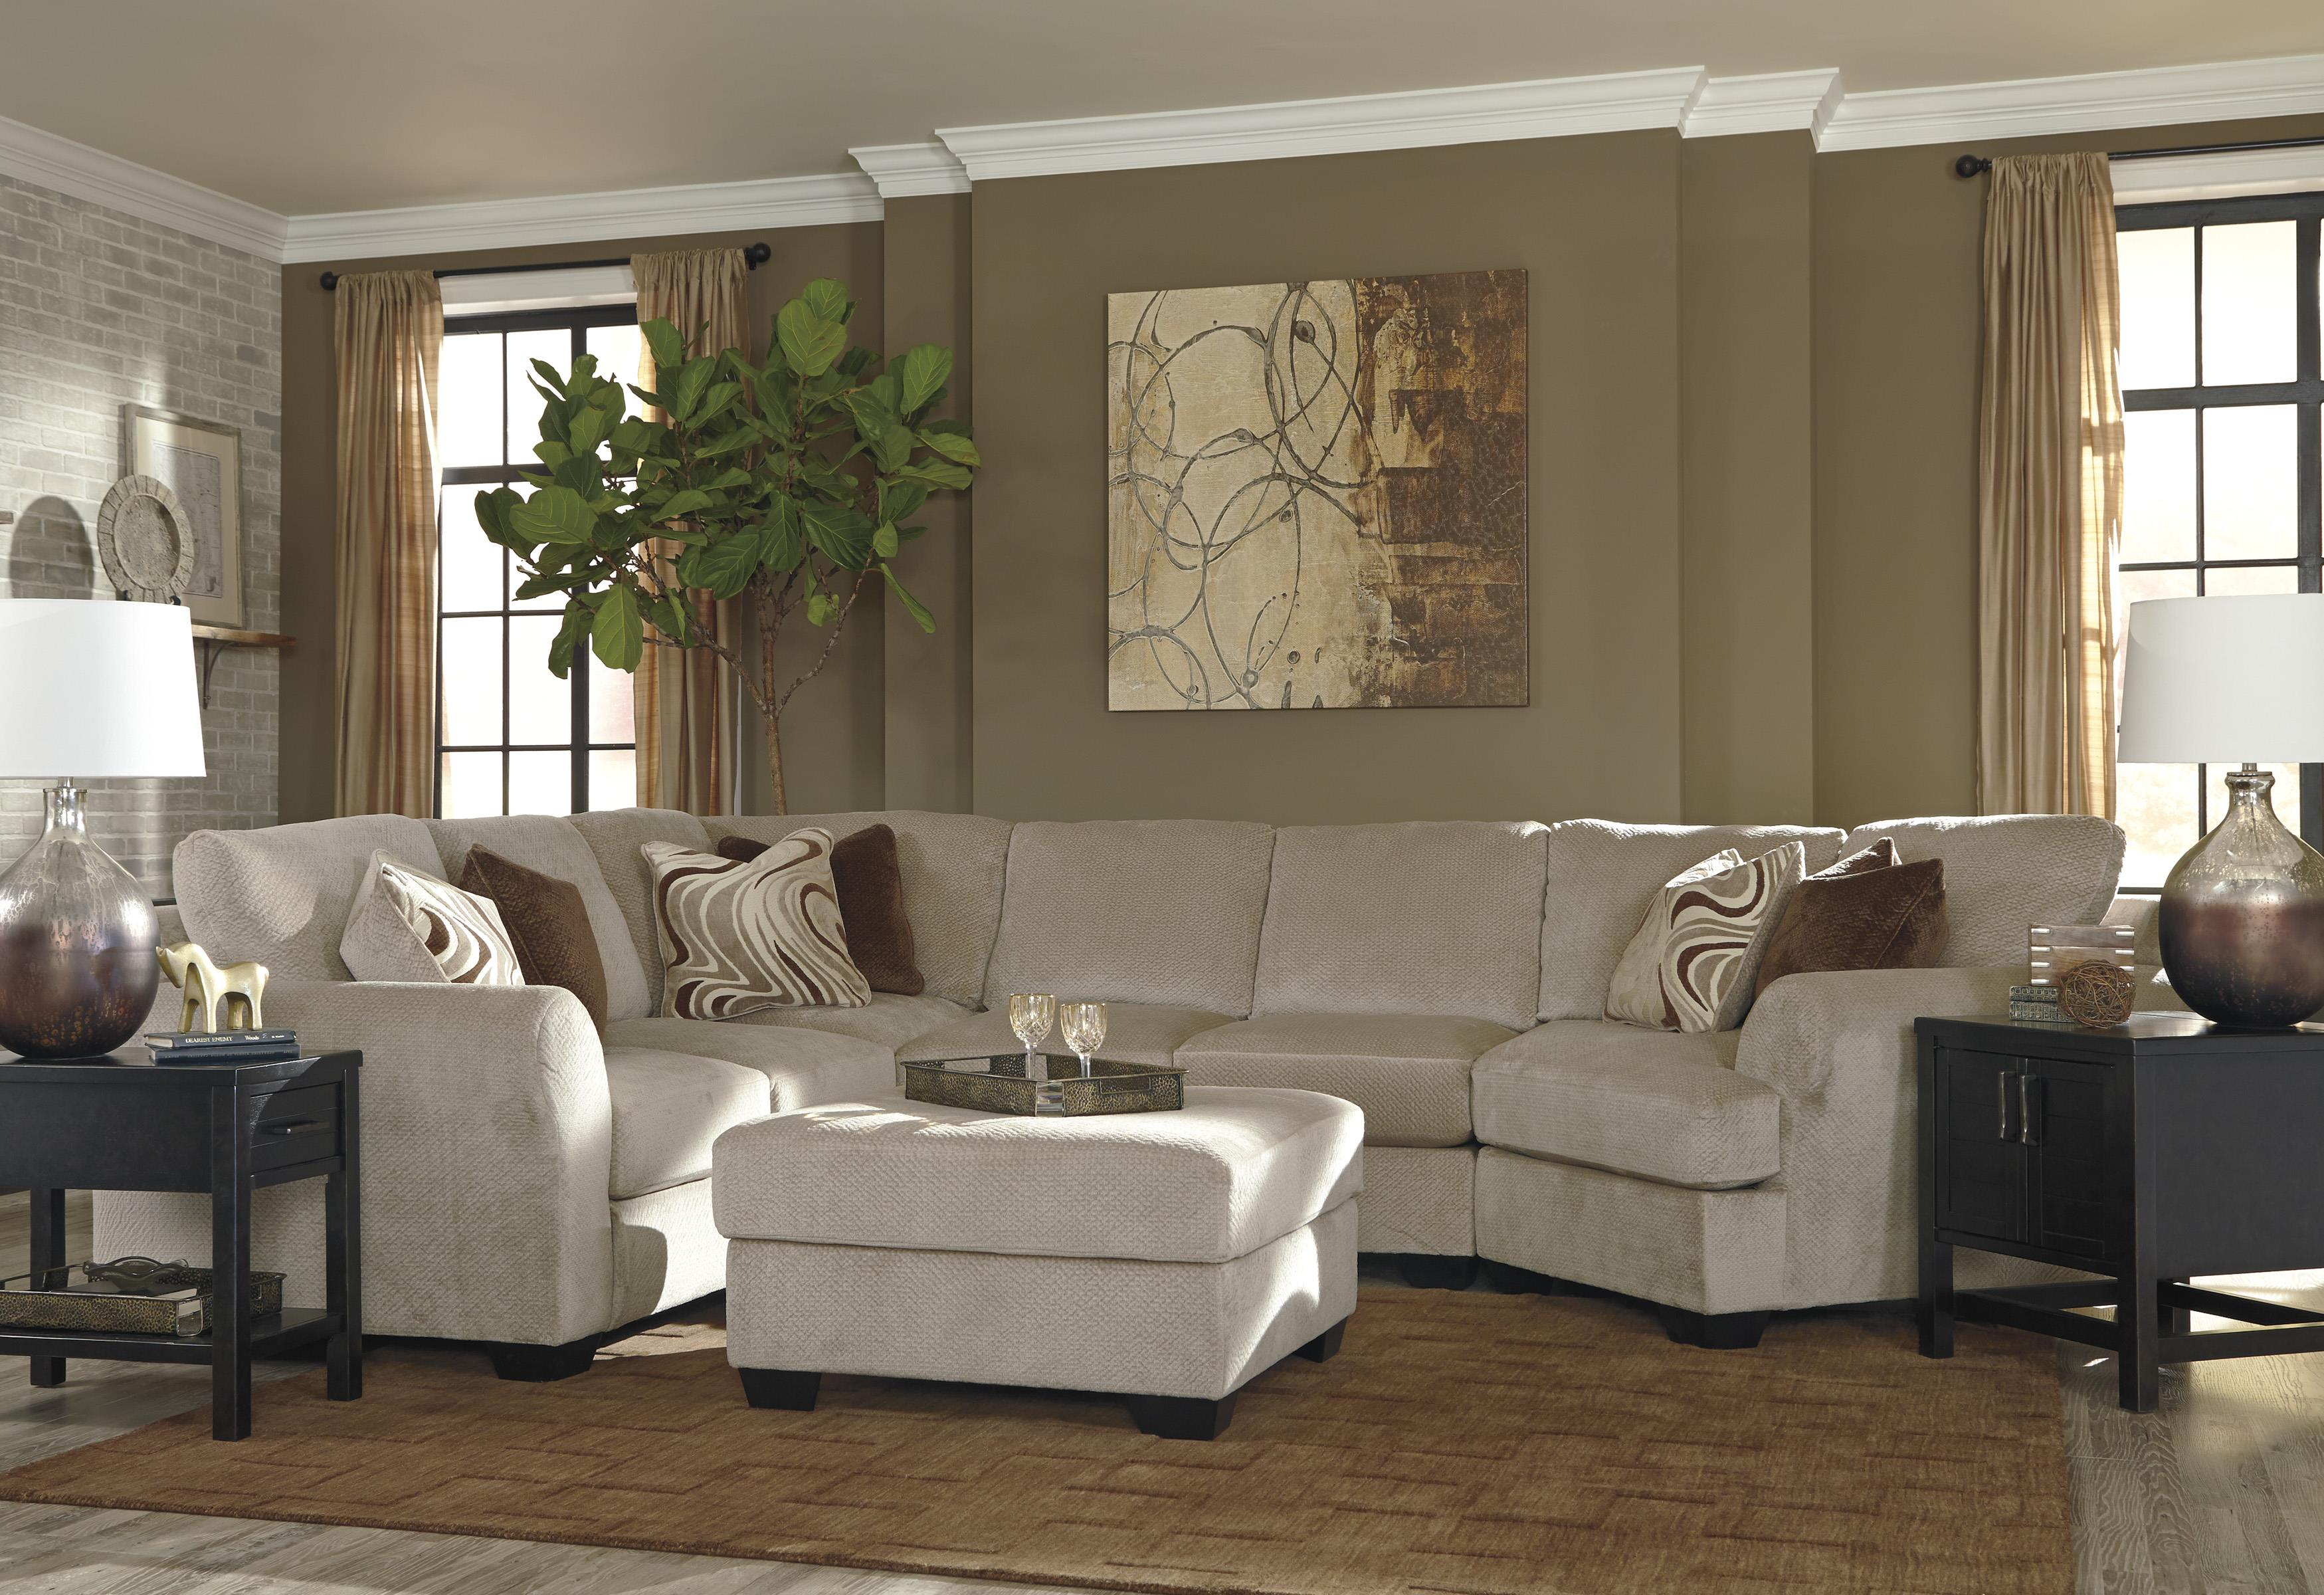 Benchcraft Hazes Stationary Living Room Group - Item Number: 65701 Living Room Group 3